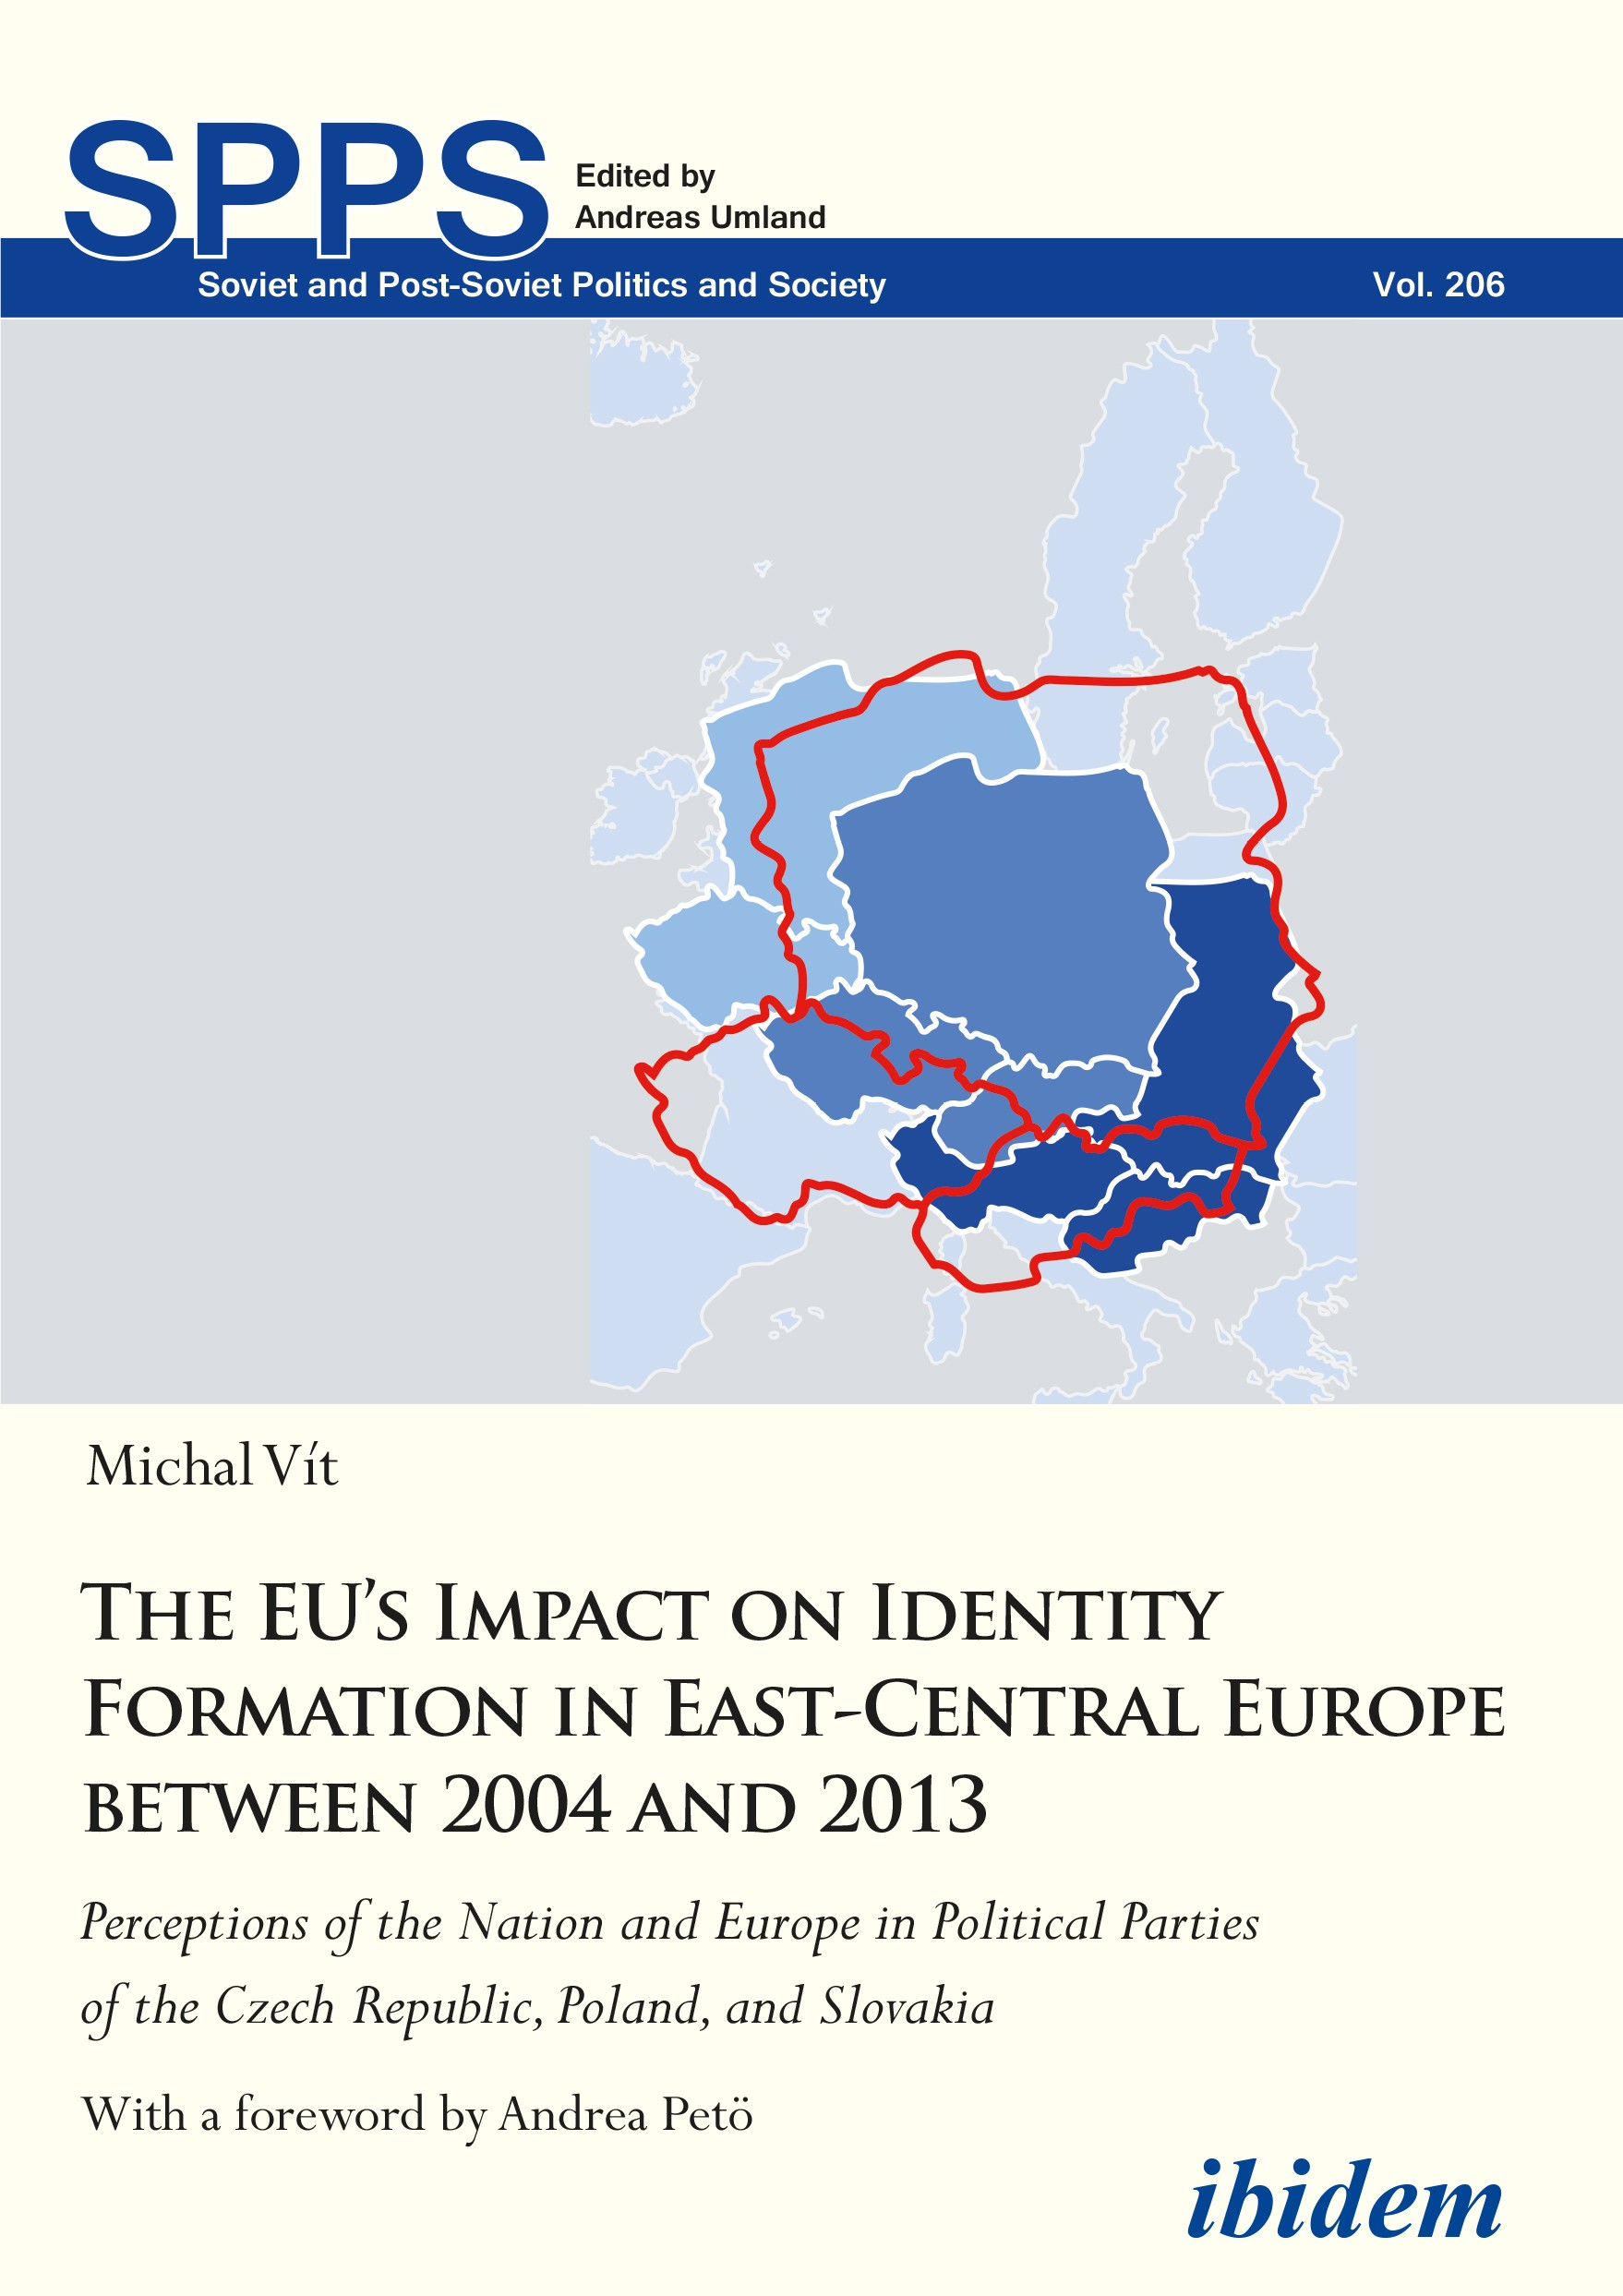 The EU's Impact on Identity Formation in East-Central Europe between 2004 and 2013